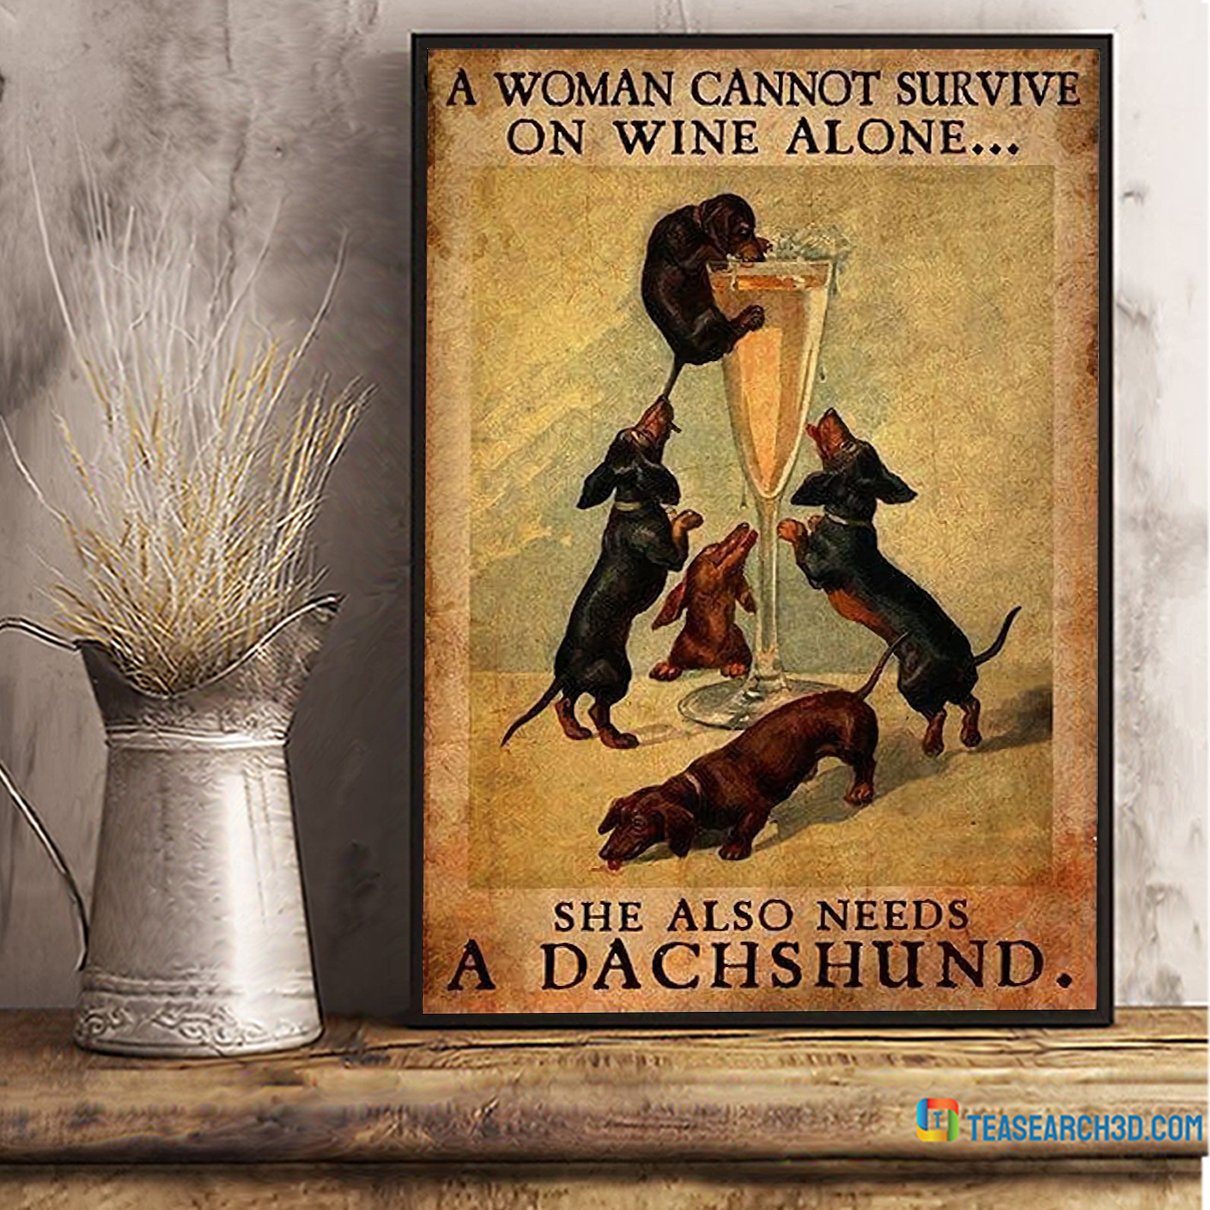 Dachshund a woman cannot survive on wine alone poster